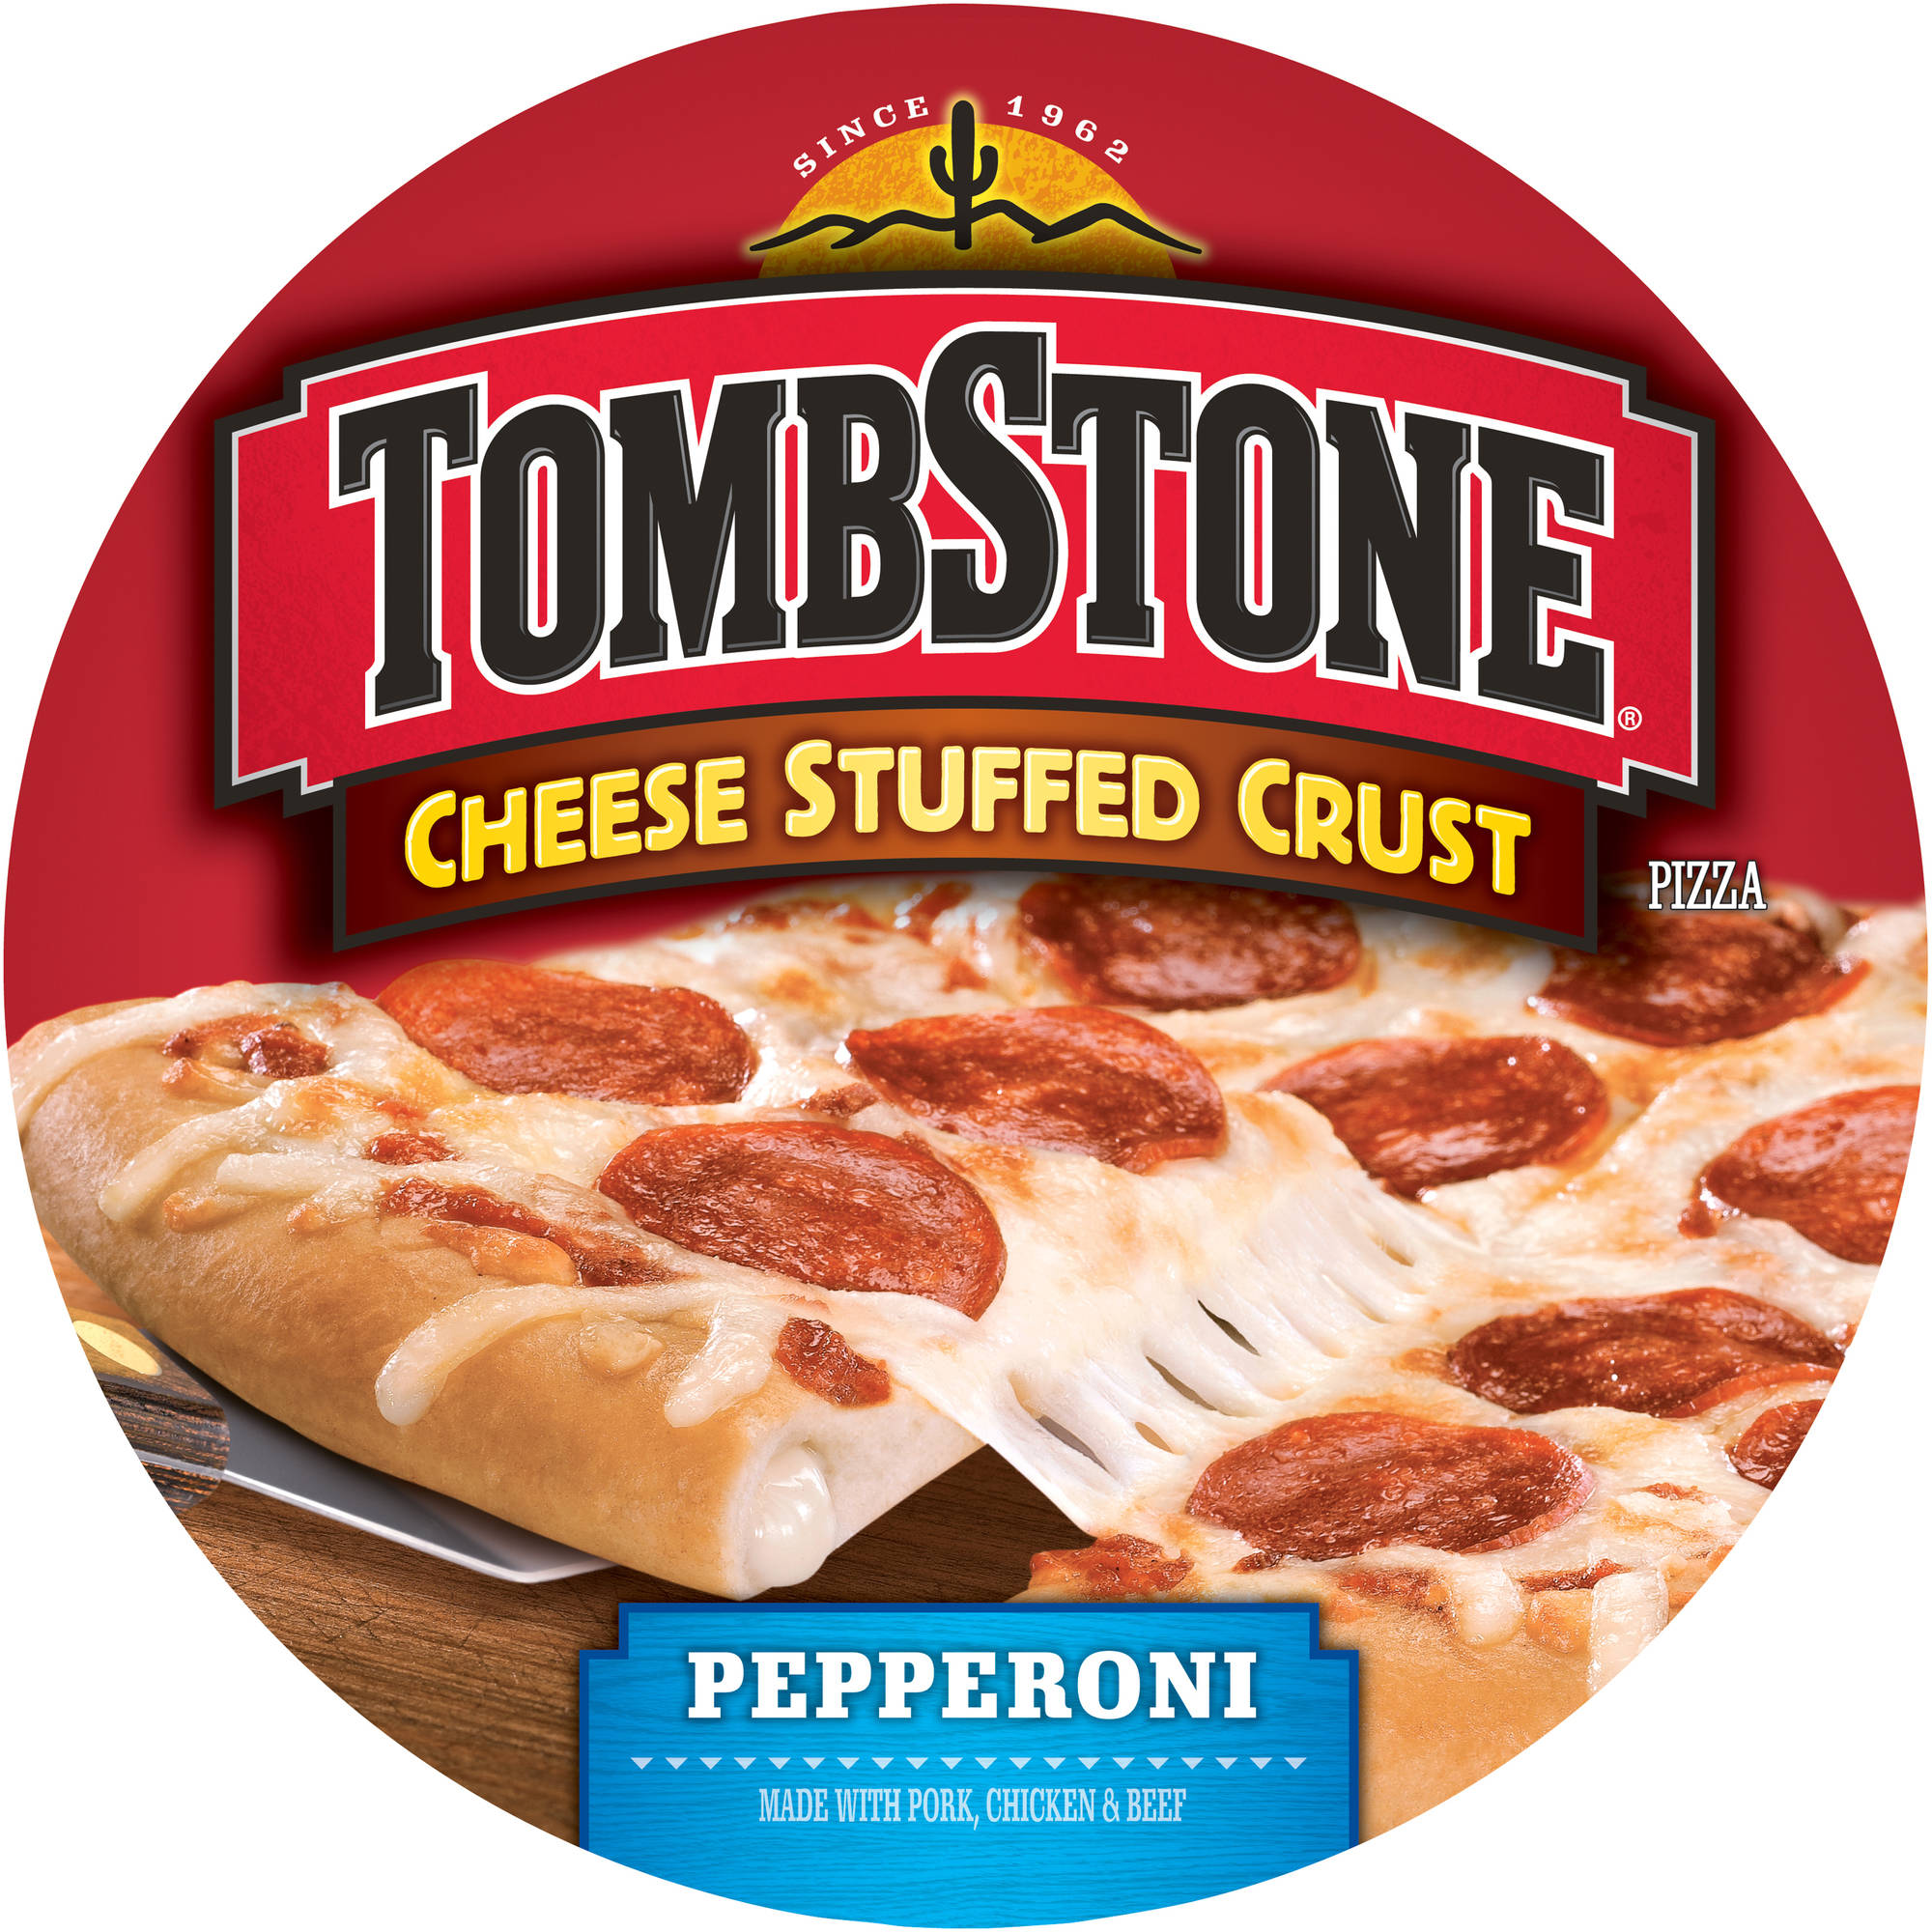 Tombstone Cheese Stuffed Crust Pepperoni Pizza, 27.34 oz